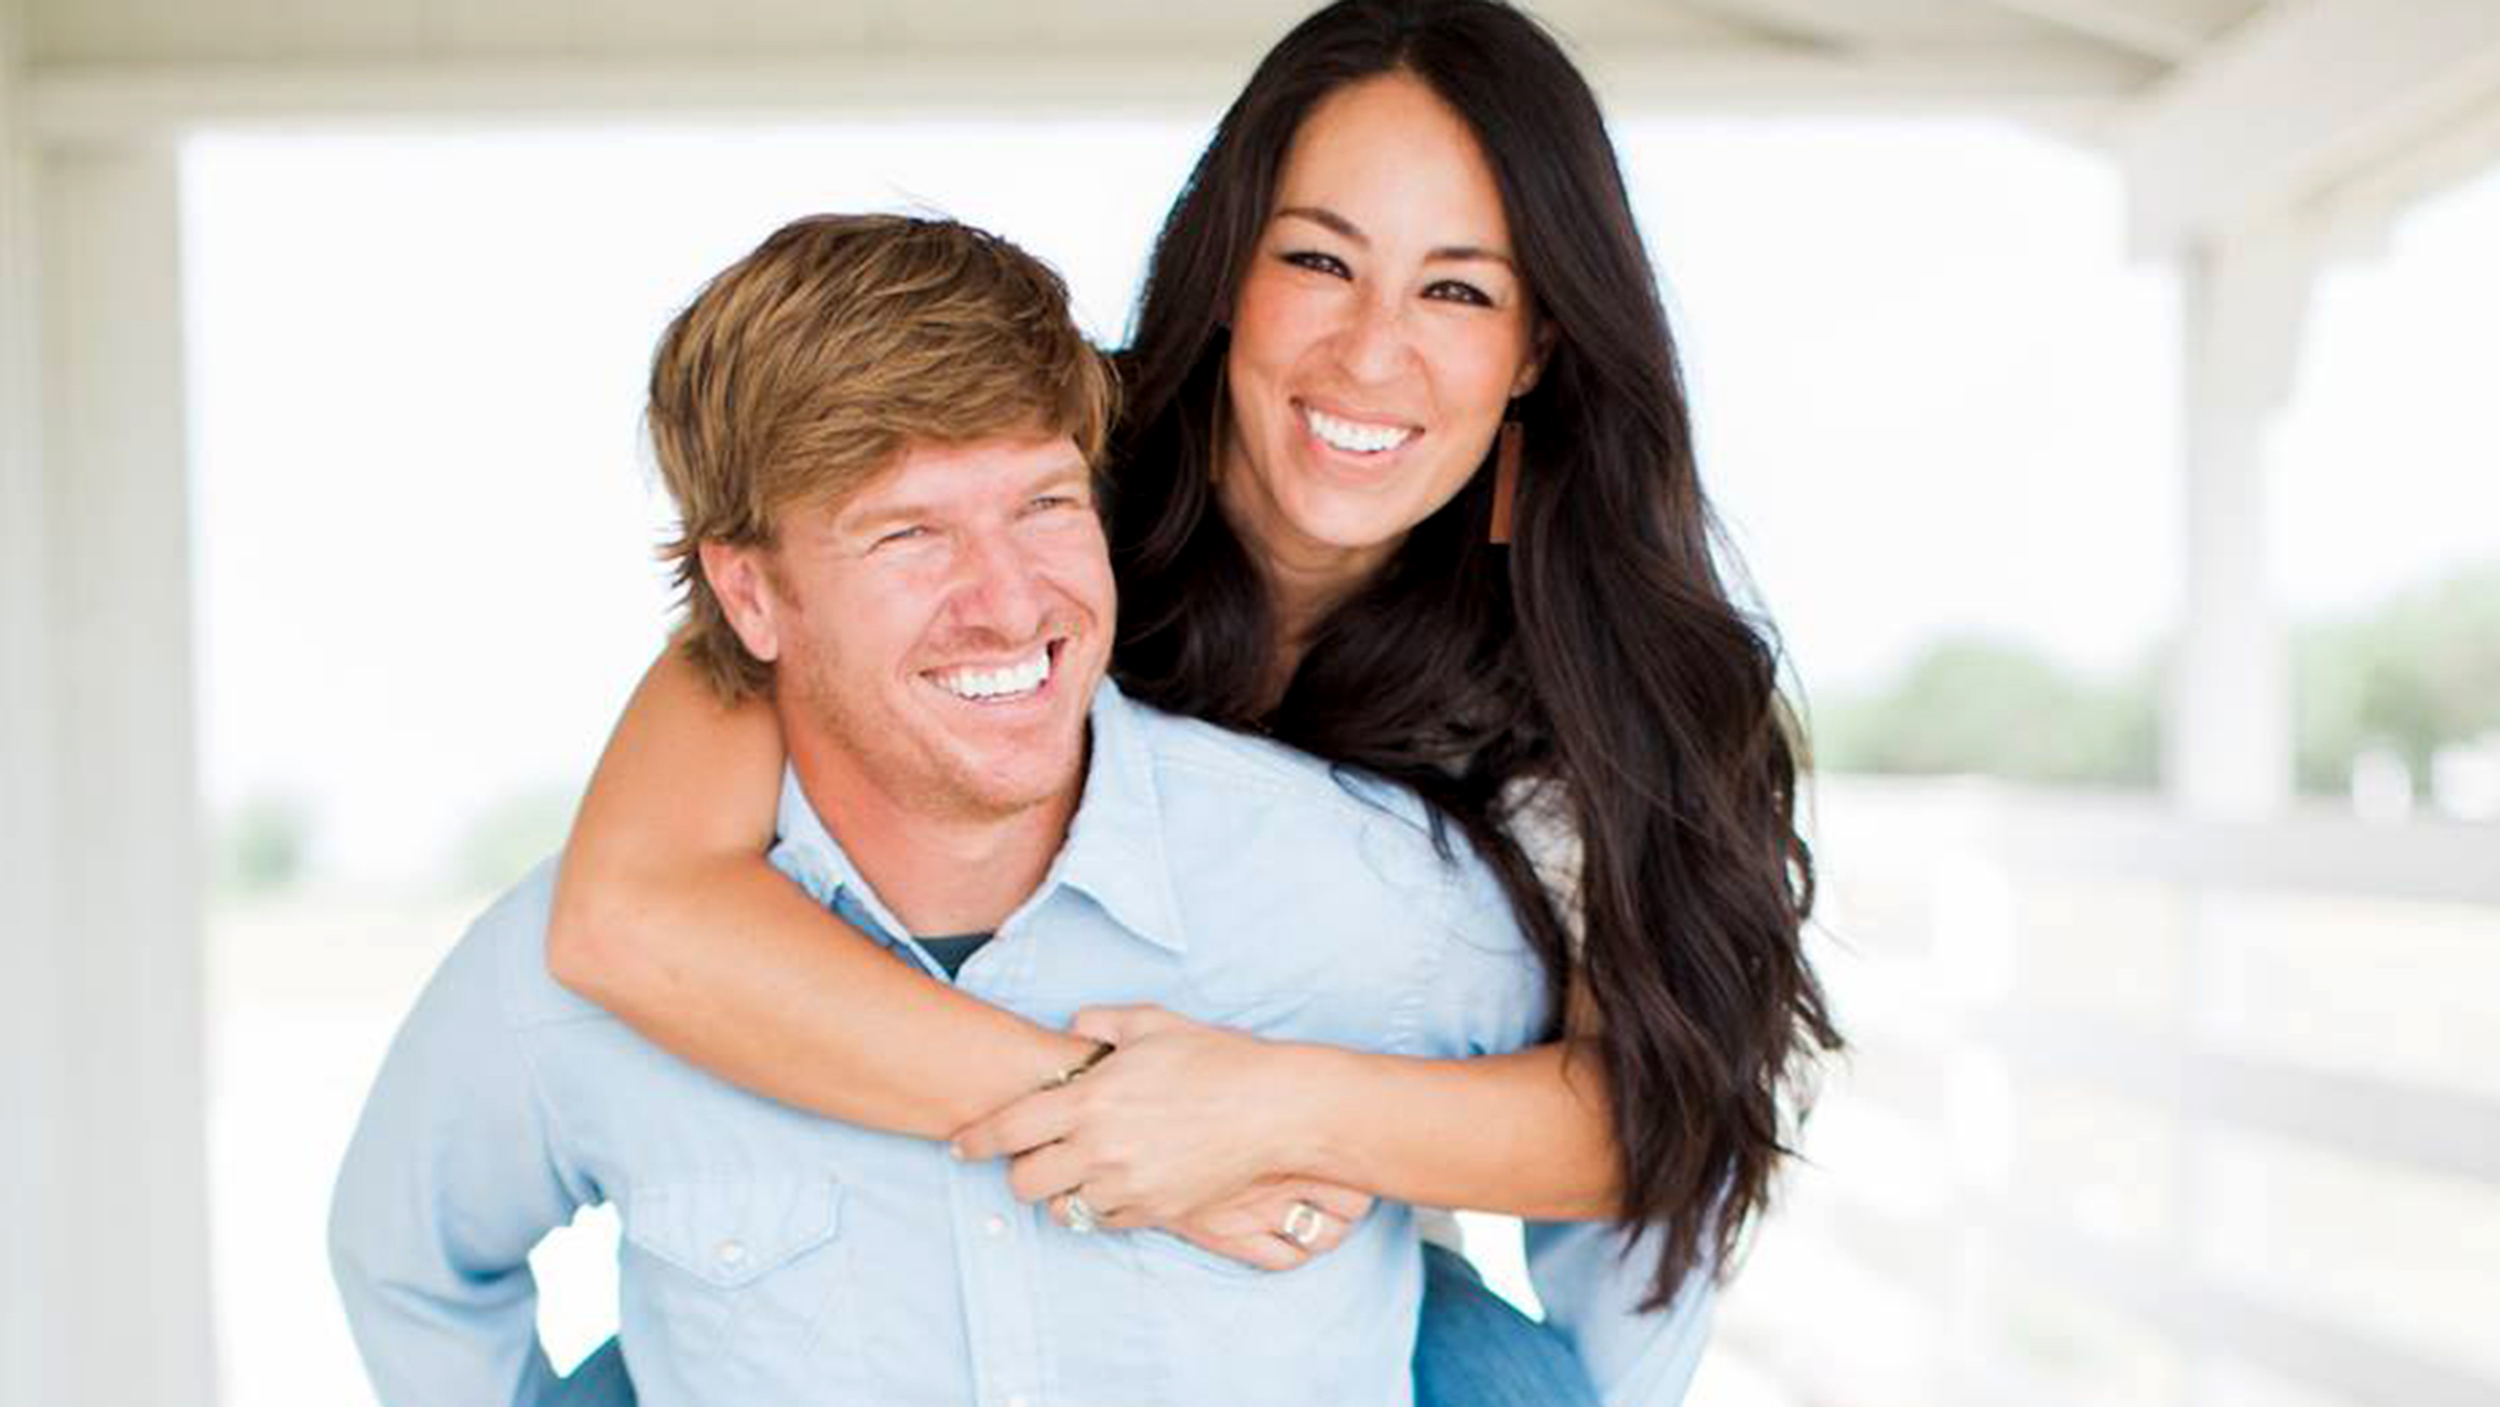 chip and joanna gaines reveal their sweet marriage secret in 39 the magnolia story 39. Black Bedroom Furniture Sets. Home Design Ideas